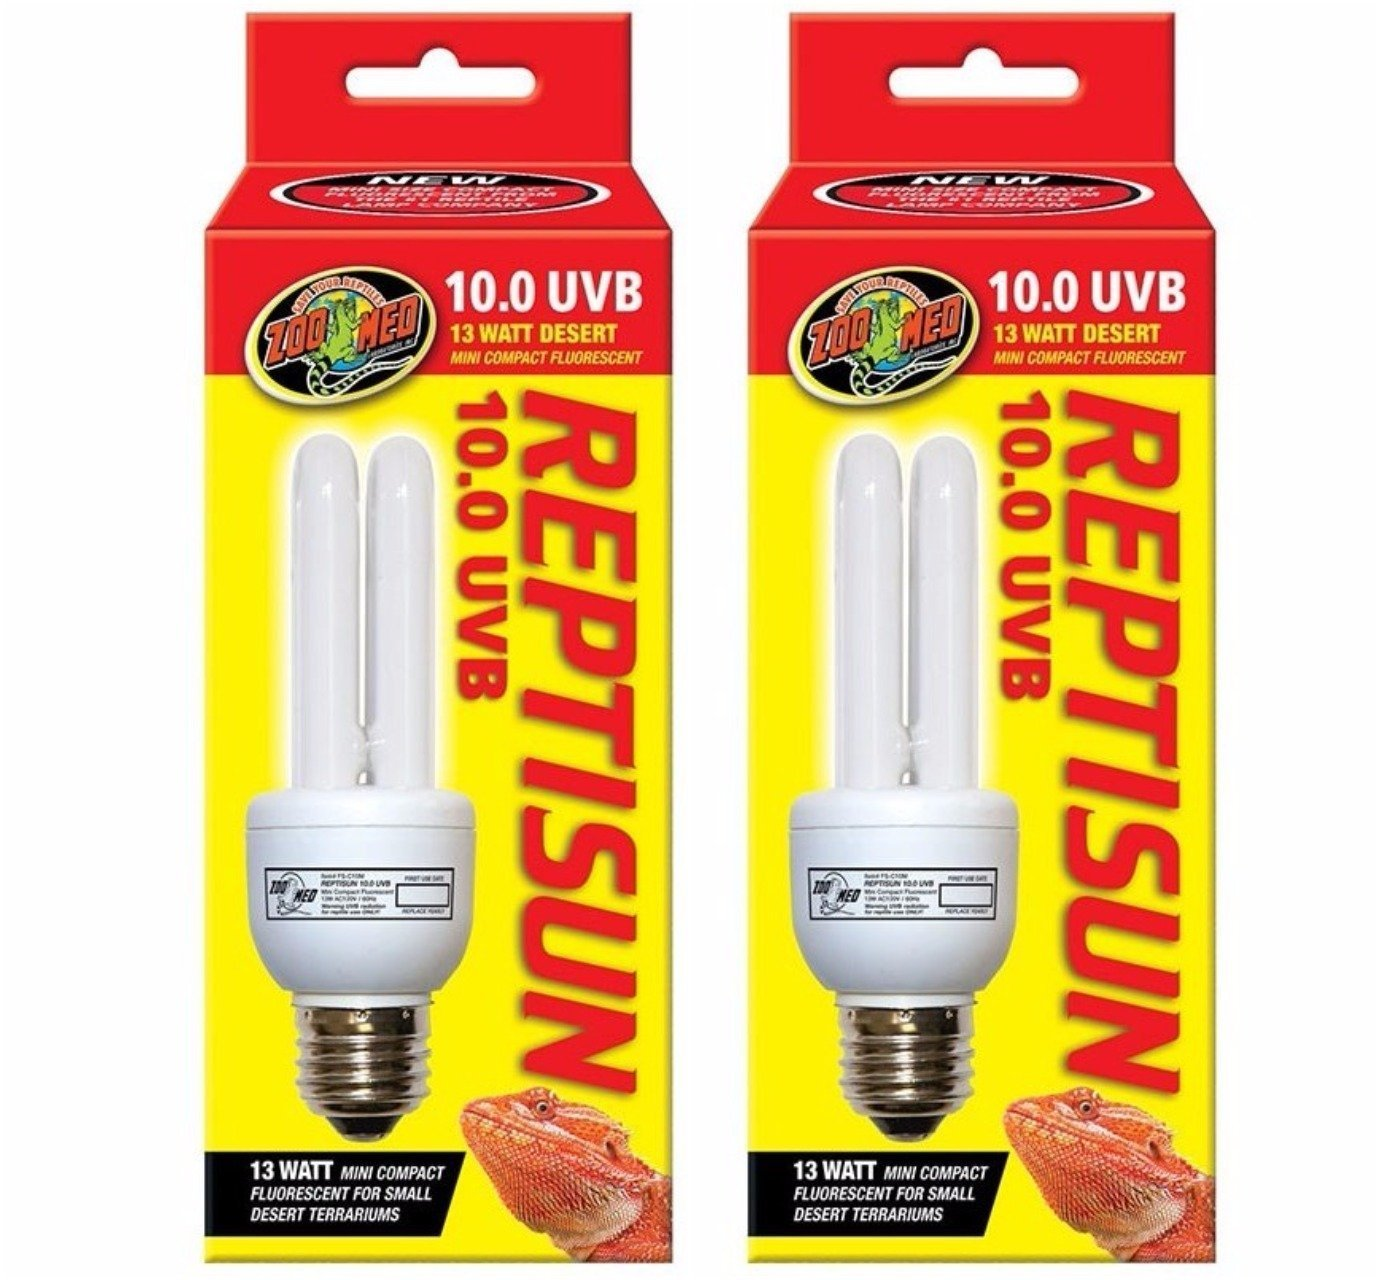 (2 Pack) Zoo Med Reptisun 10.0 Uvb Mini Compact Fluorescent by Zoo Med